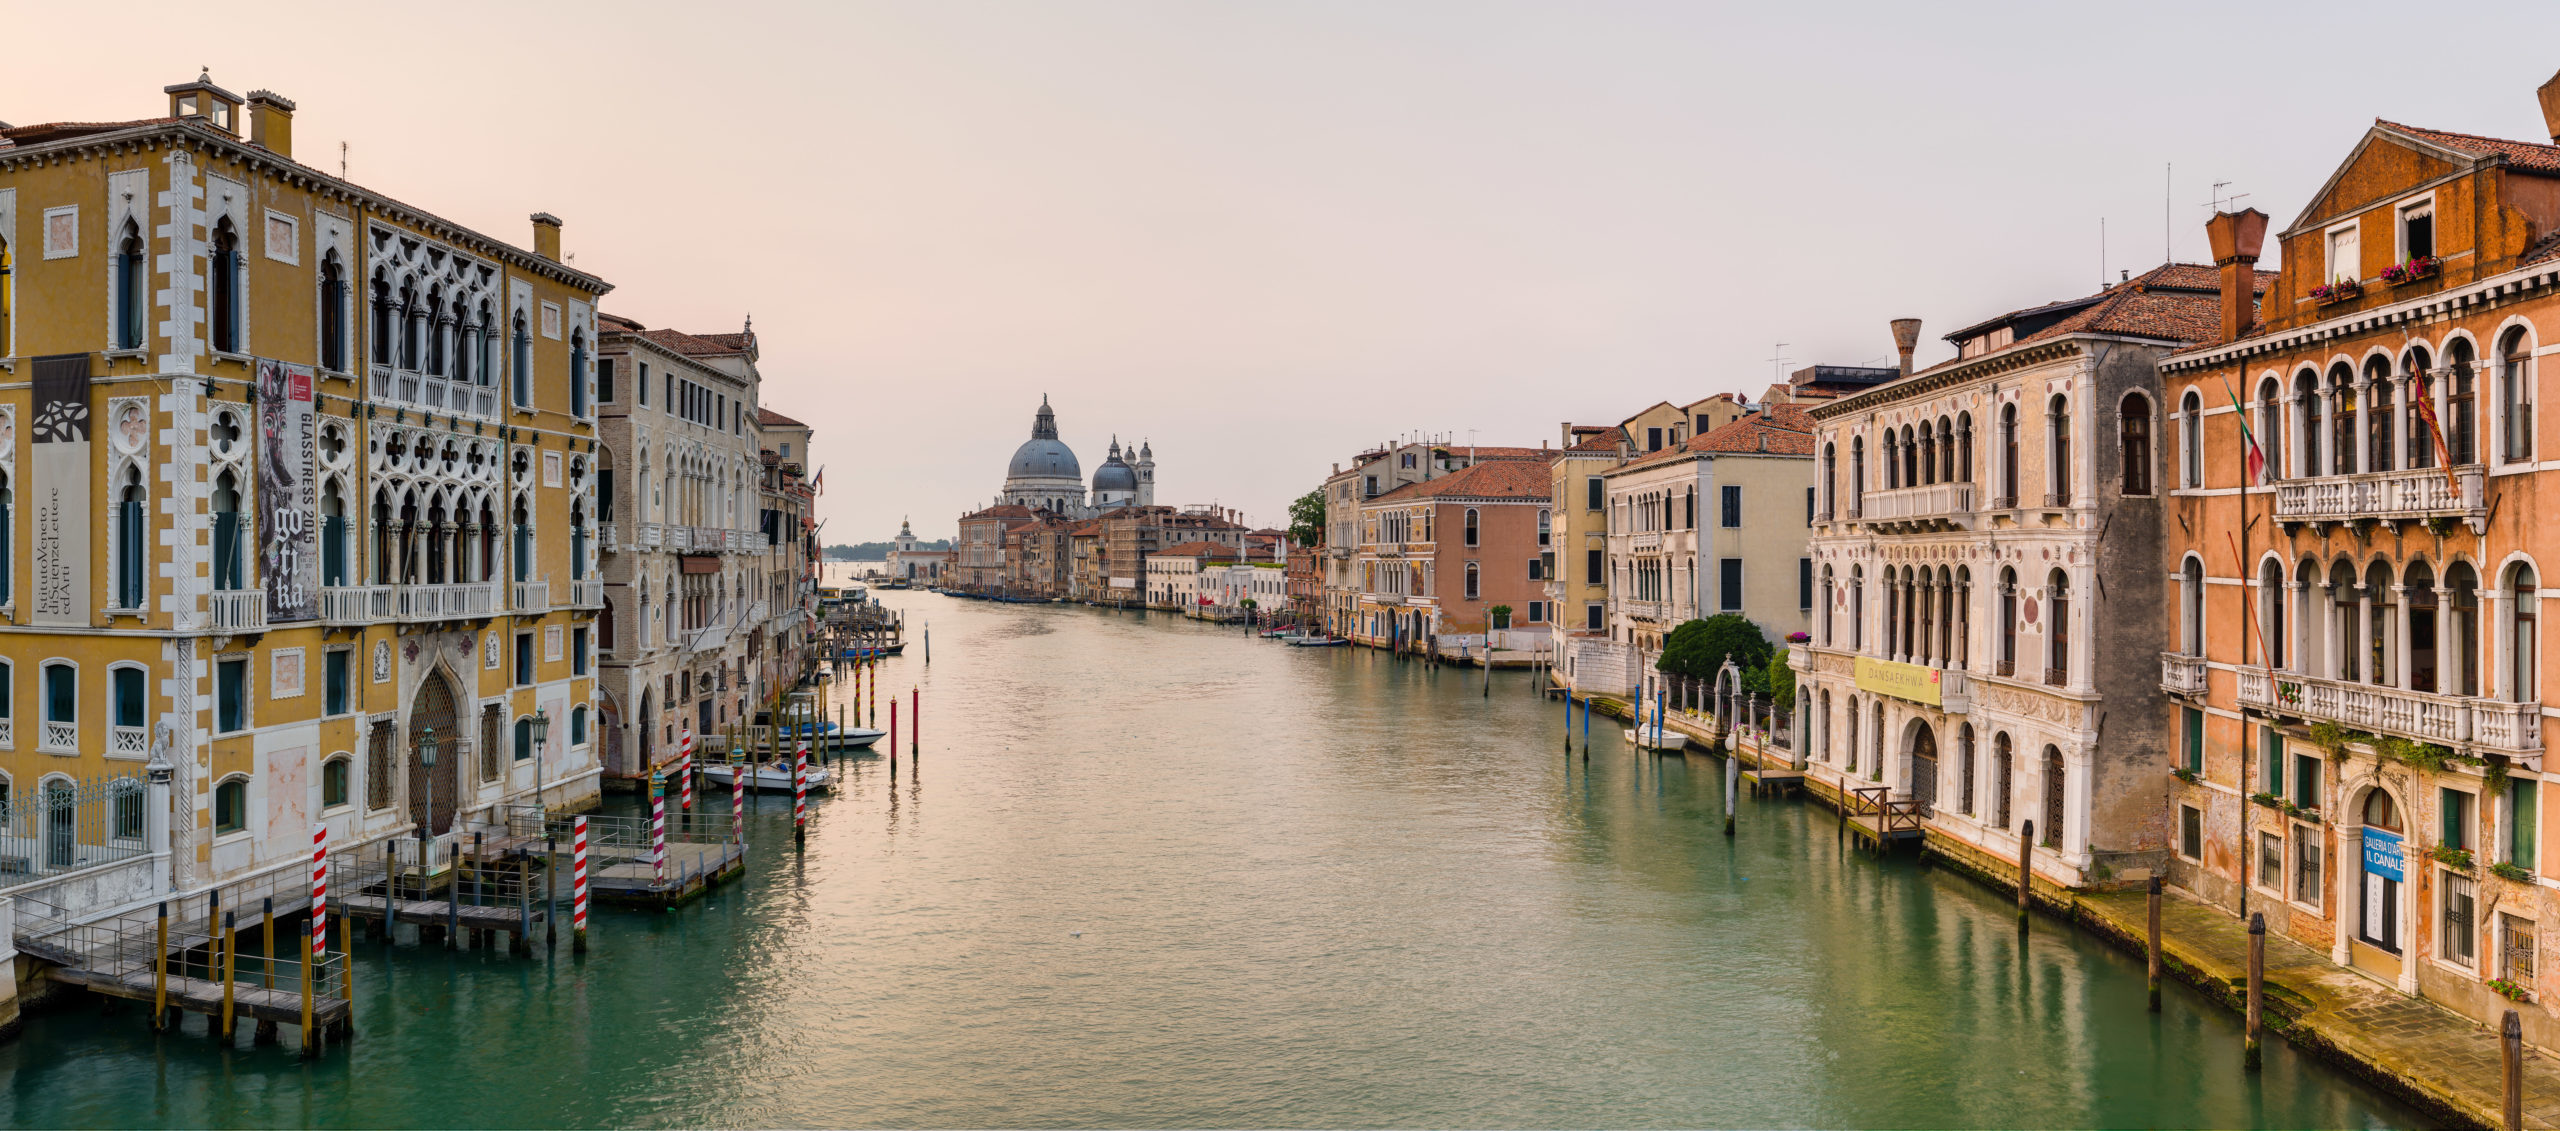 Grand Canal East End, Venice, by Benh LIEU SONG on Flickr